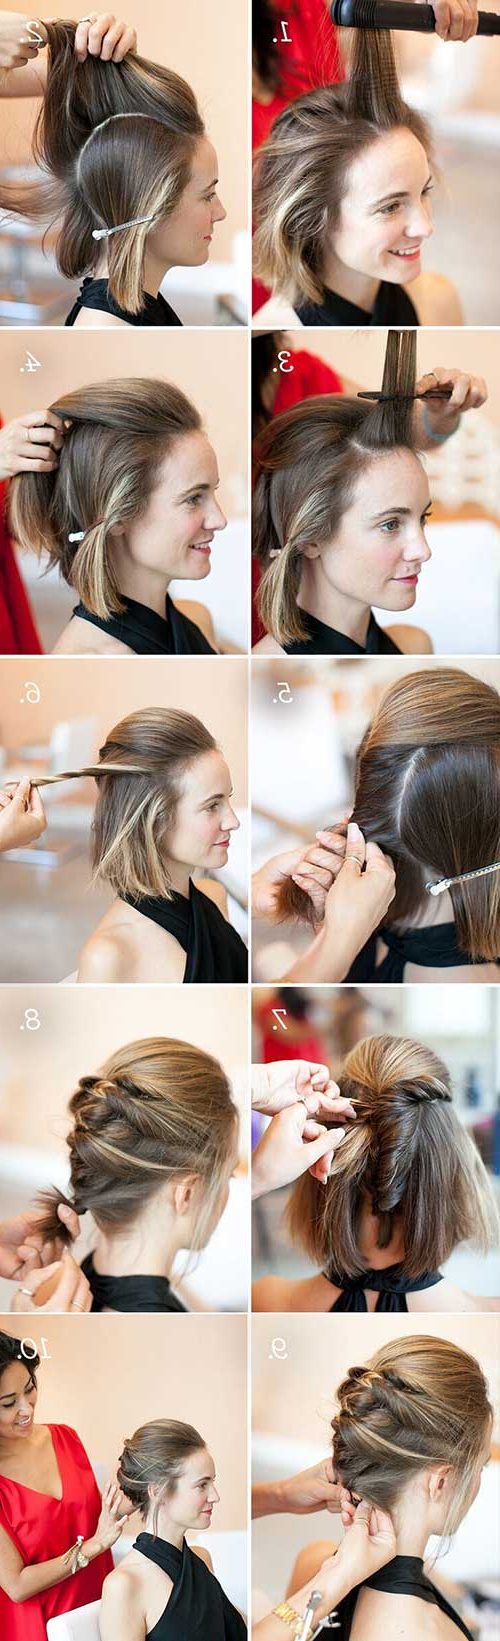 20 Incredible Diy Short Hairstyles For Short Messy Hairstyles With Twists (View 6 of 20)